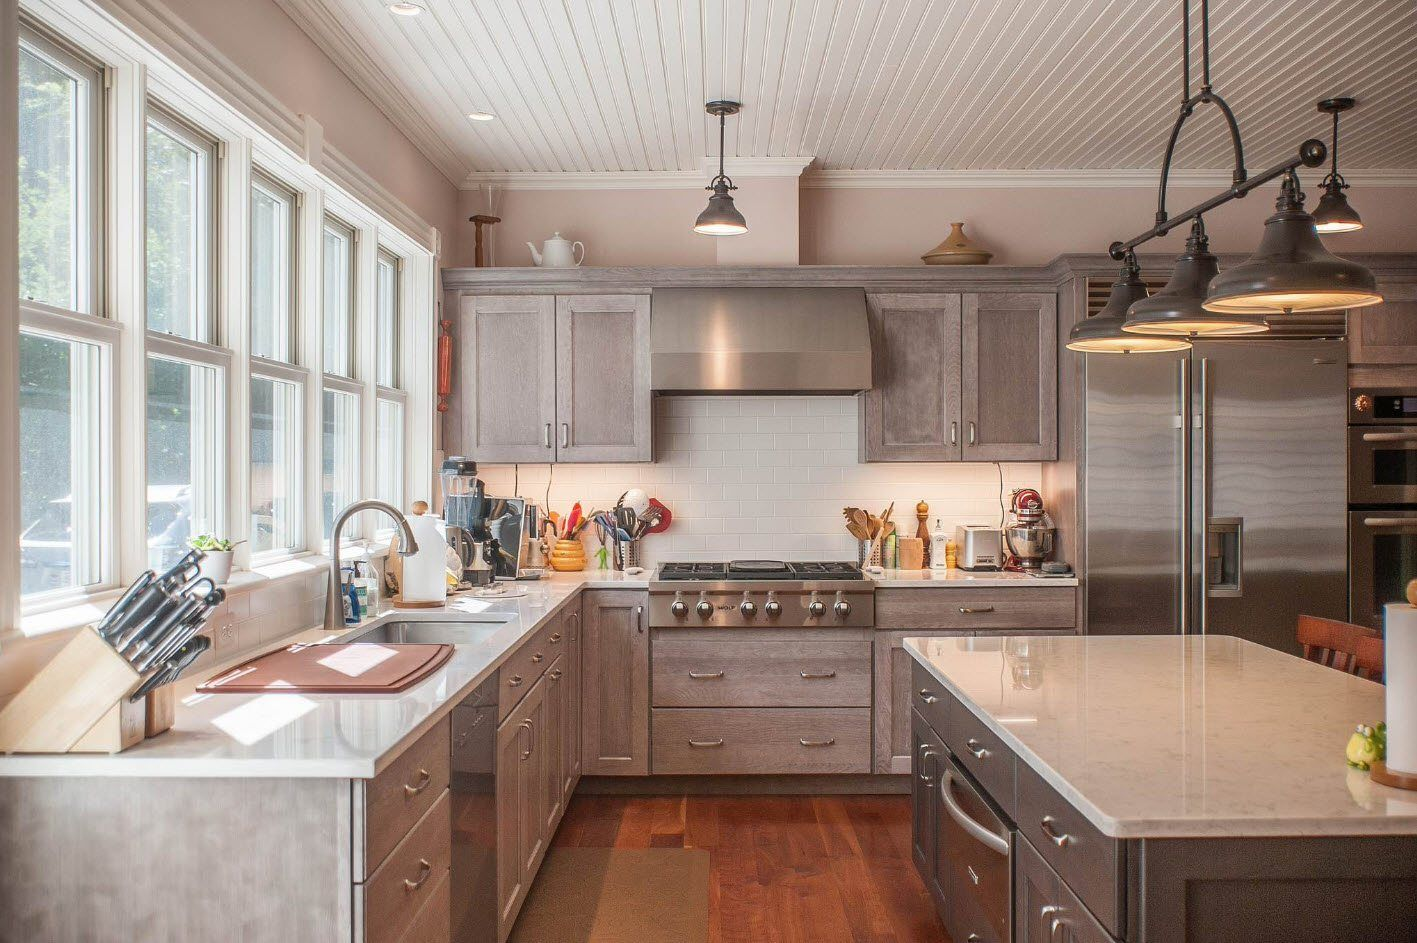 Gray kitchen cabinets and steel gray appliances contrasting with wooden floor